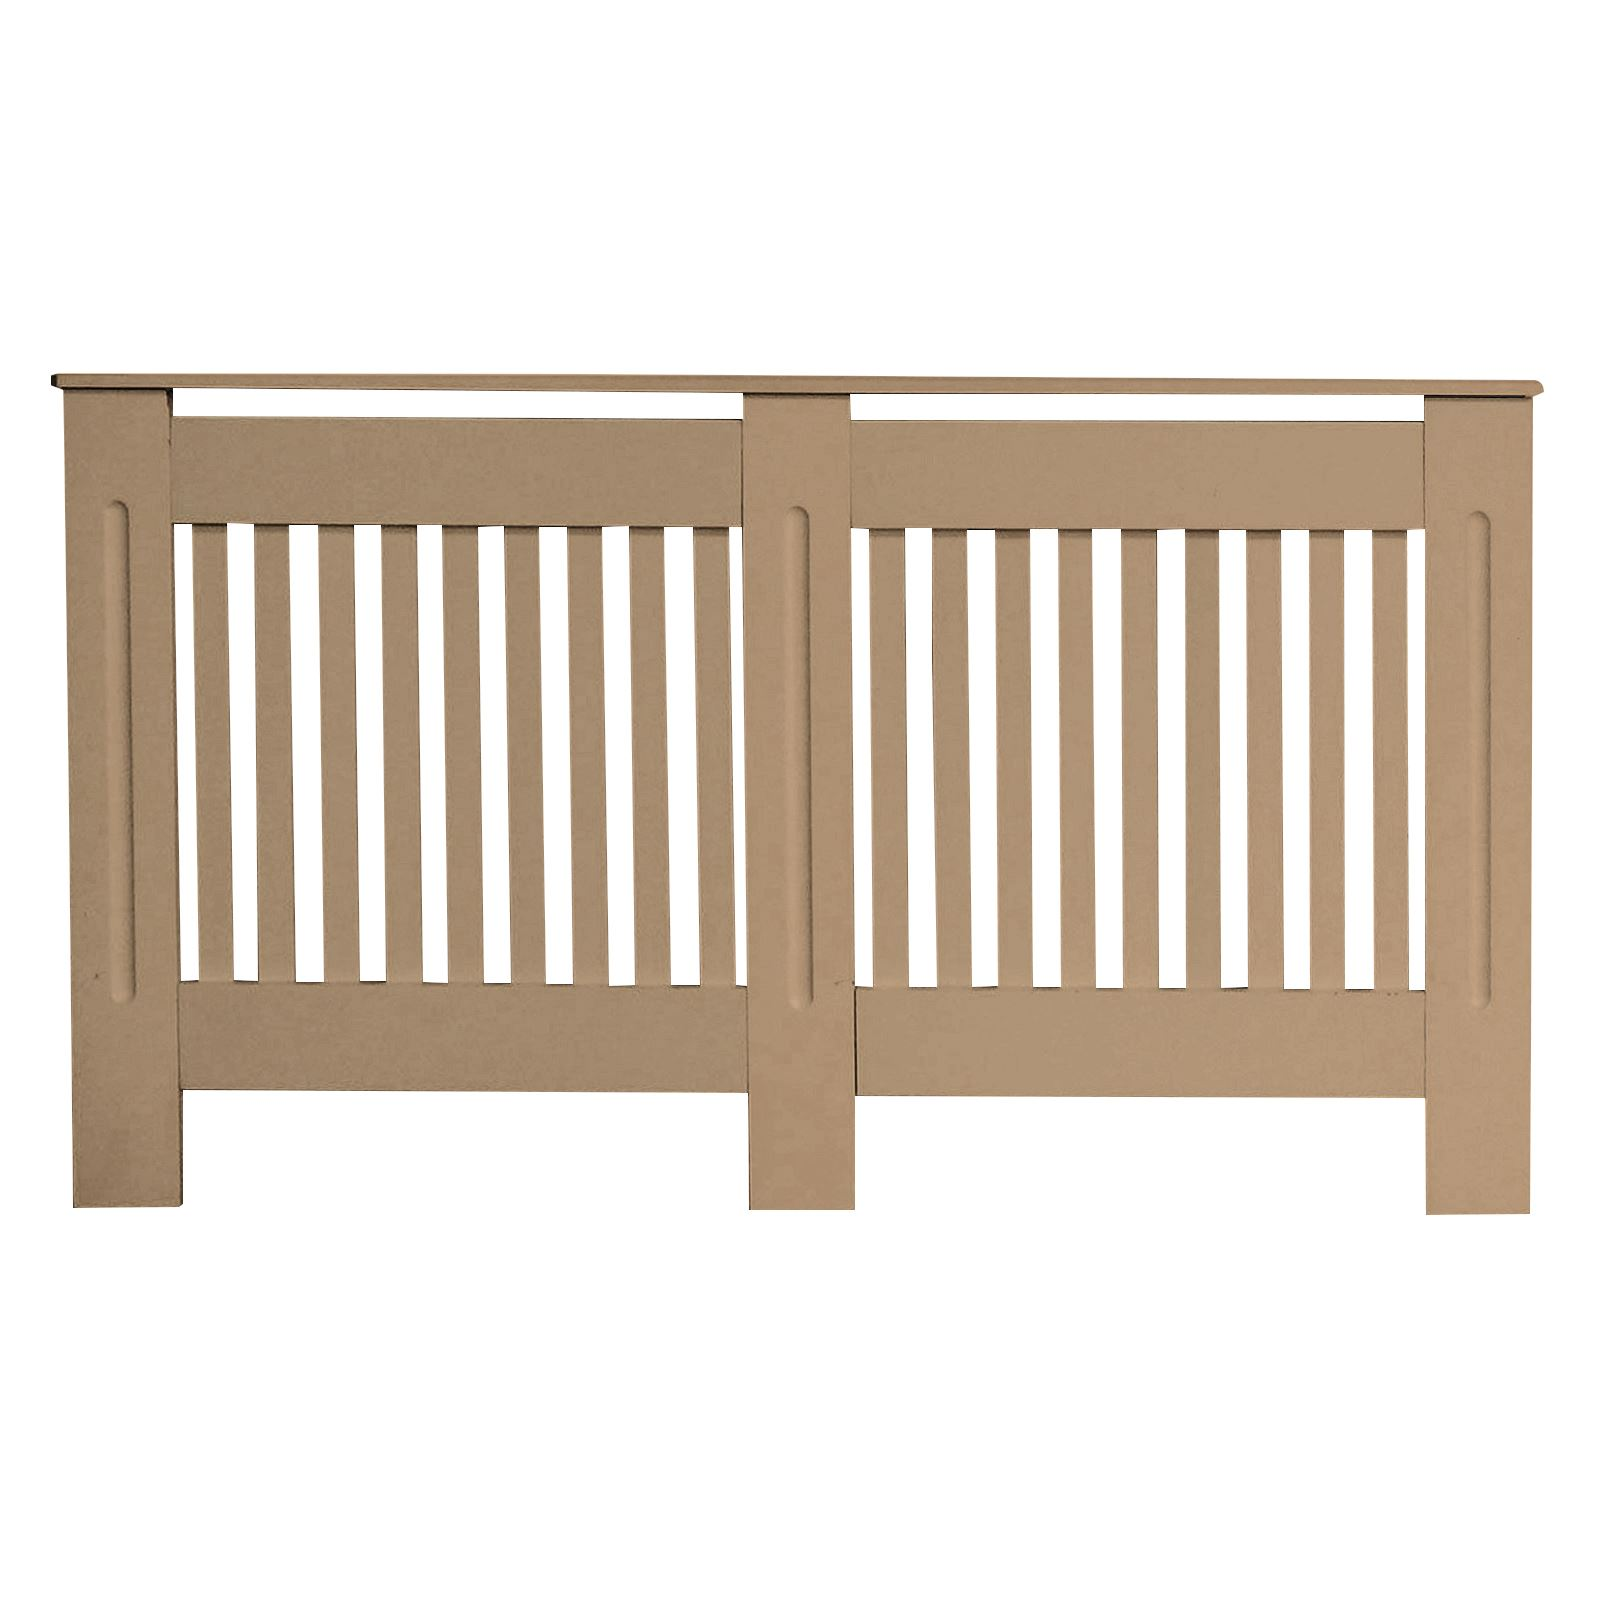 Traditional-Radiator-Cover-Cabinet-Vertical-Slatted-MDF-Wood-Small-Large-Unit thumbnail 9